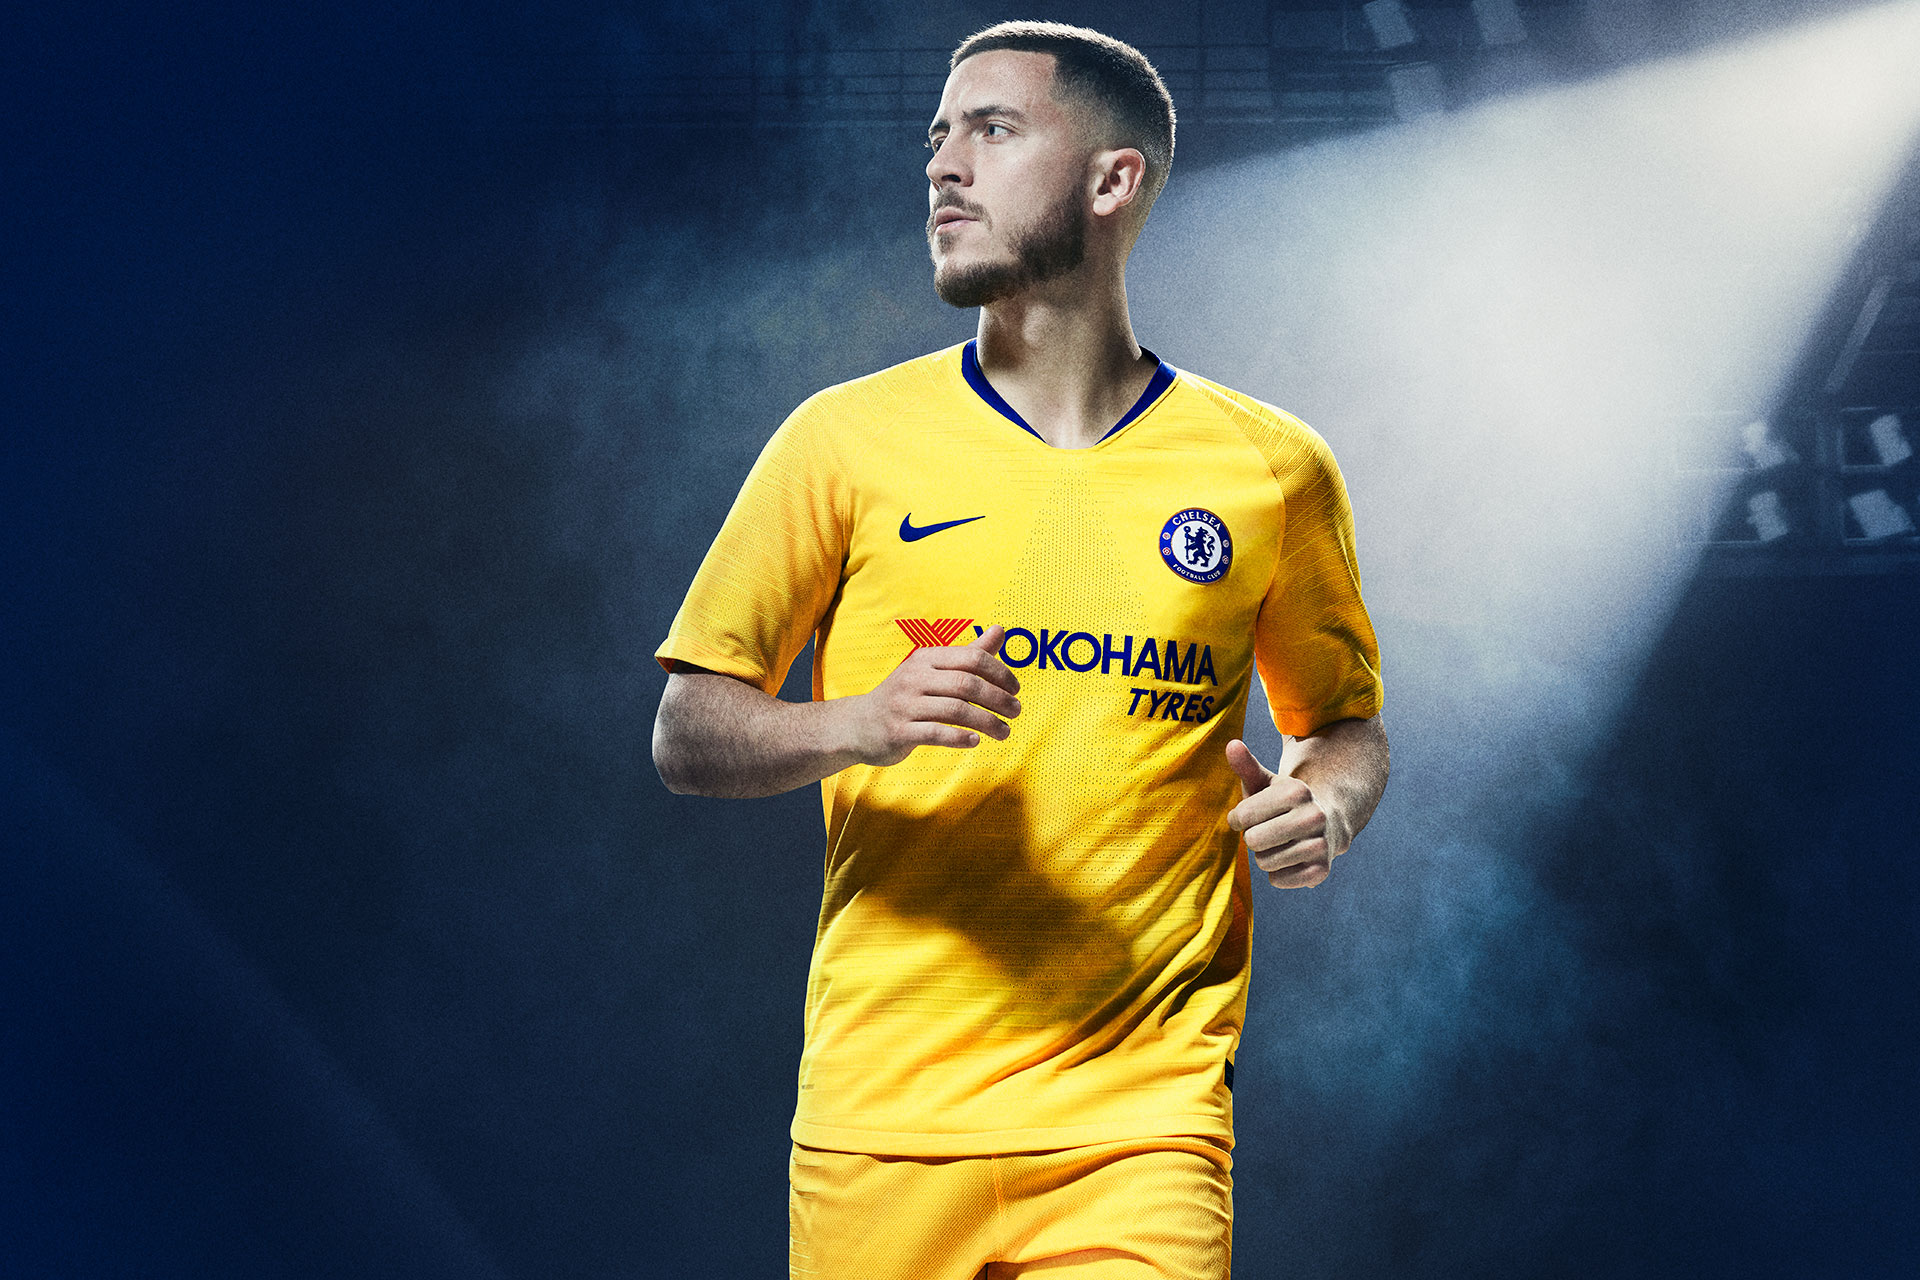 daadbc139 Nike and Chelsea launch gloriously yellow 2018-19 away kit